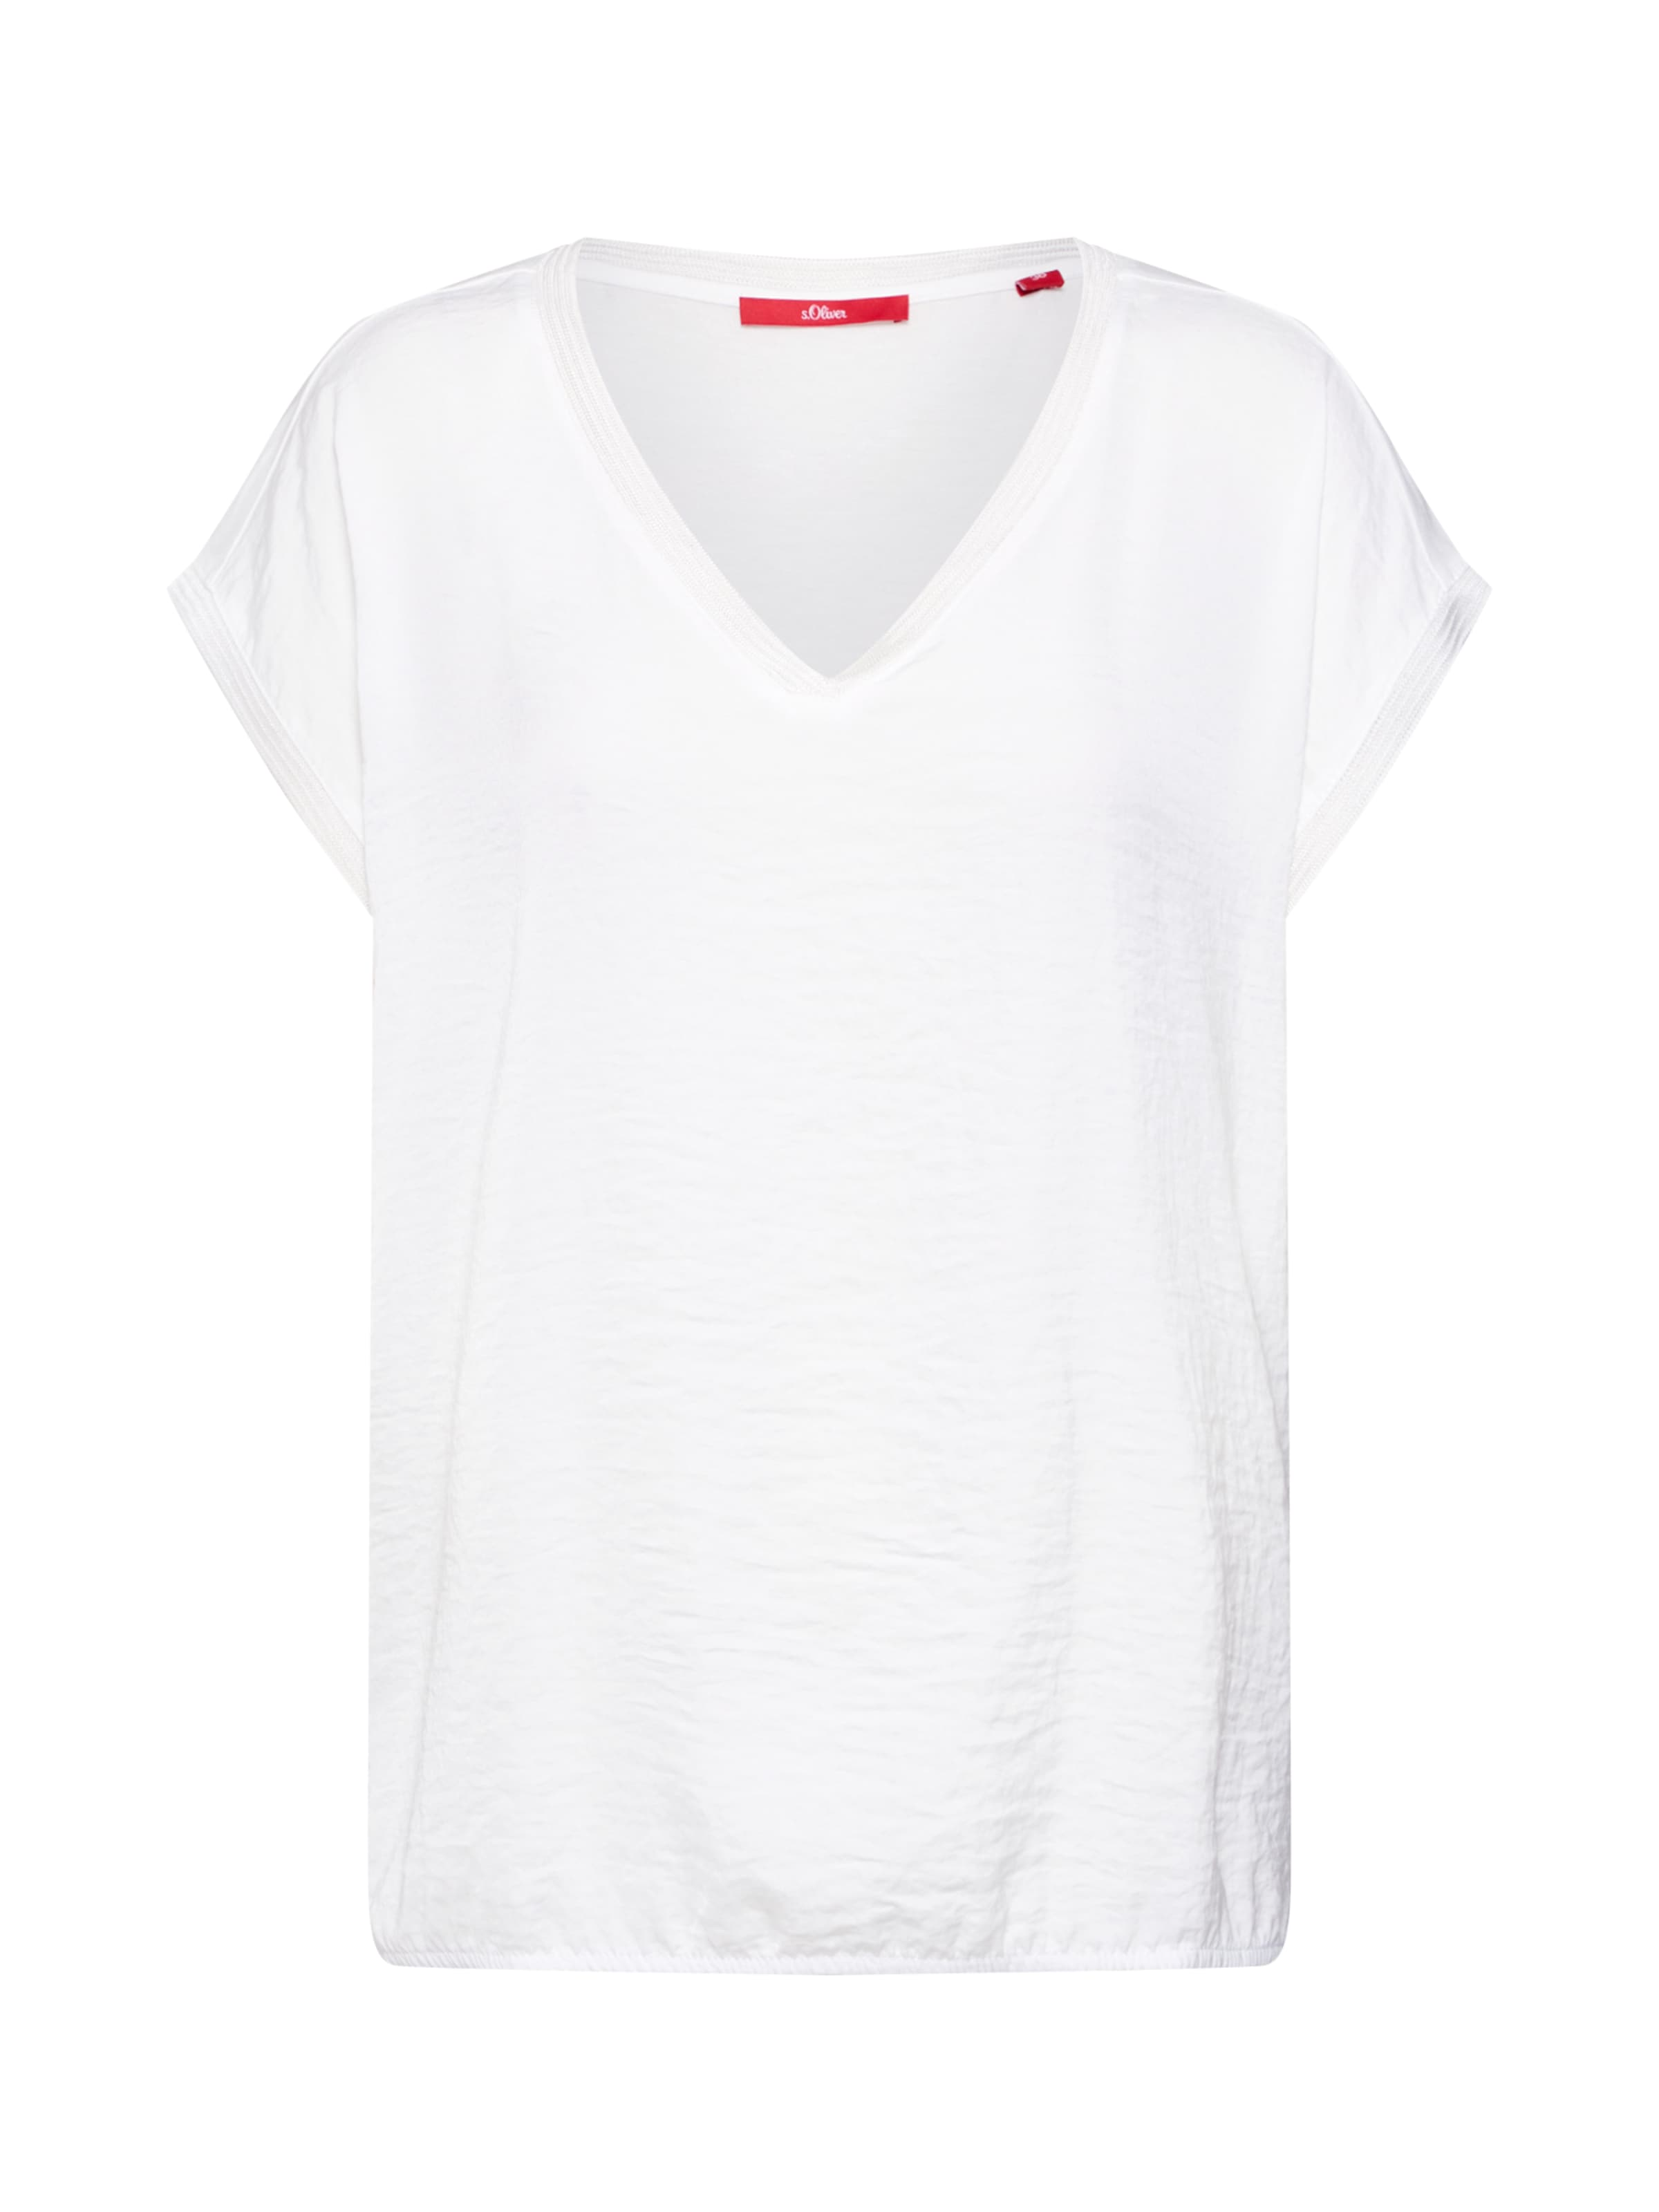 Red Label T shirt S Crème oliver En w8nkXPN0O